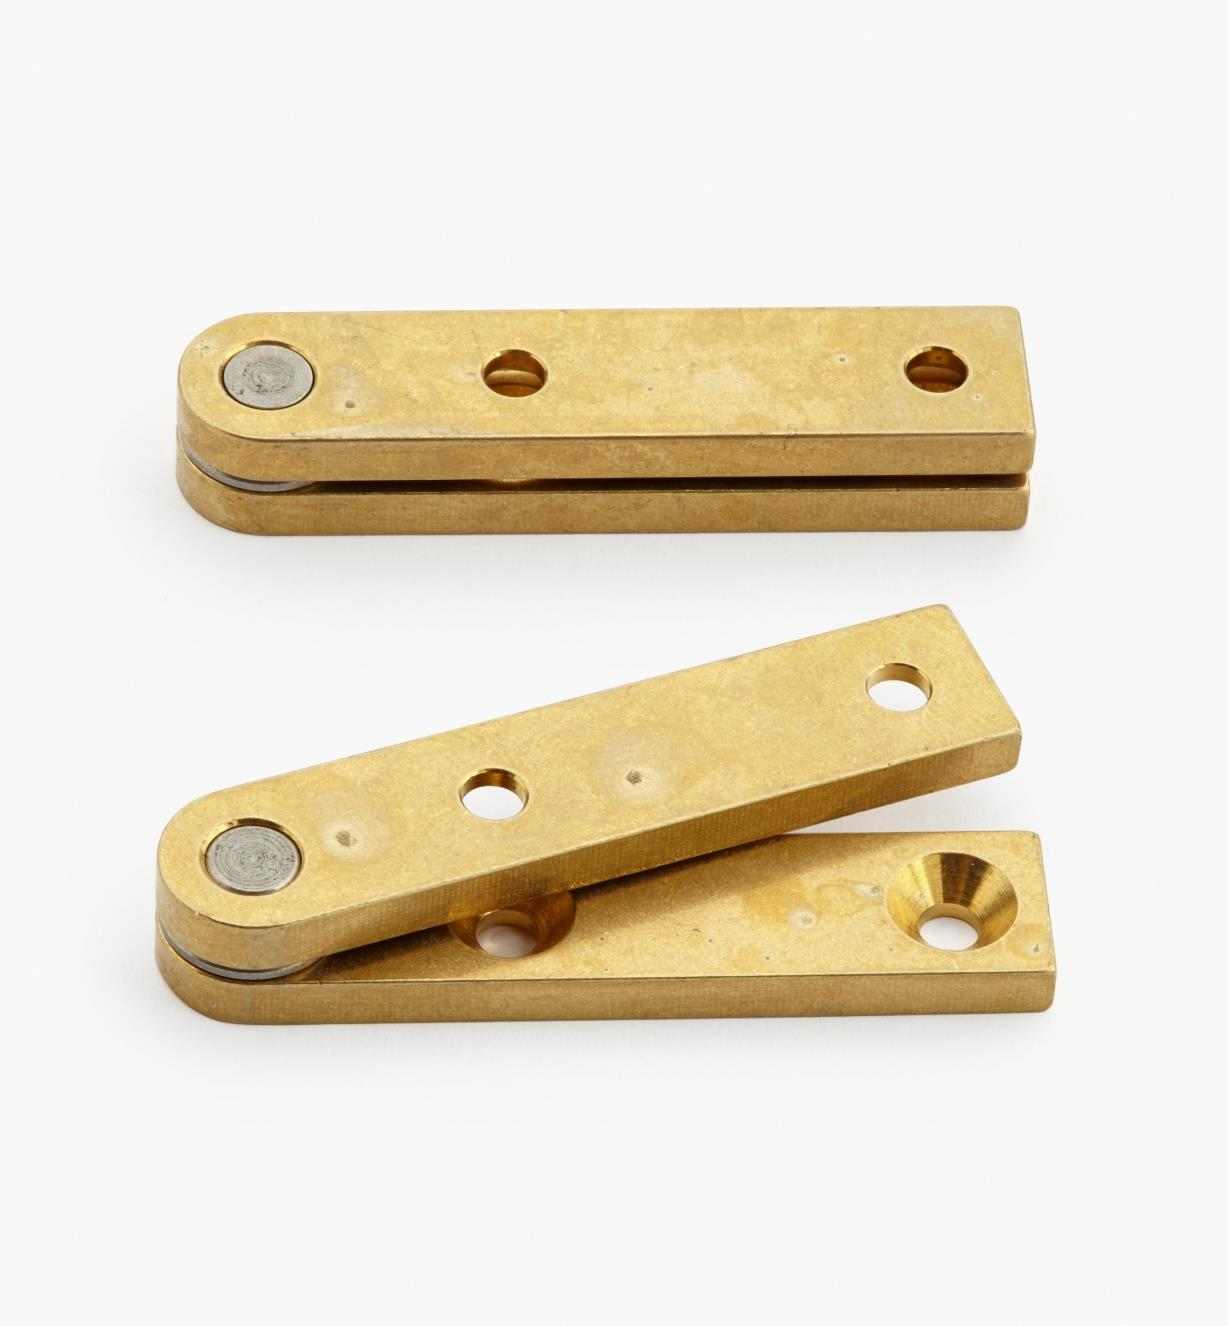 "05H0106 - 3/8"" x 1 3/4"" x 1/8"", Brass Straight Knife Hinges, pair"